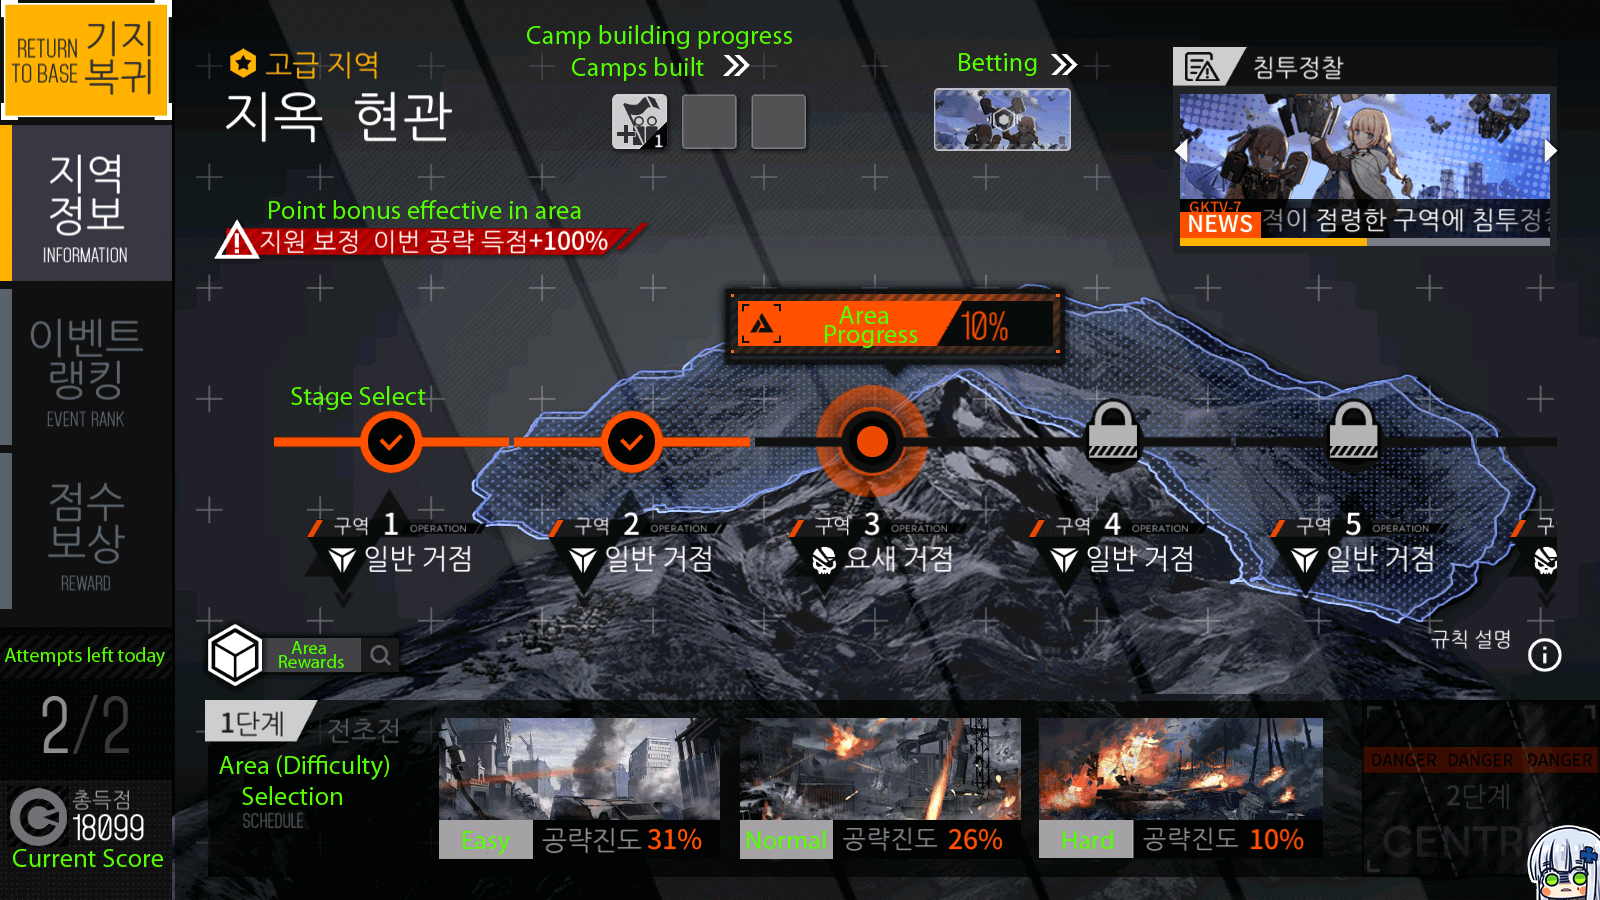 Example of Theater UI from gfl.matsuda.tips